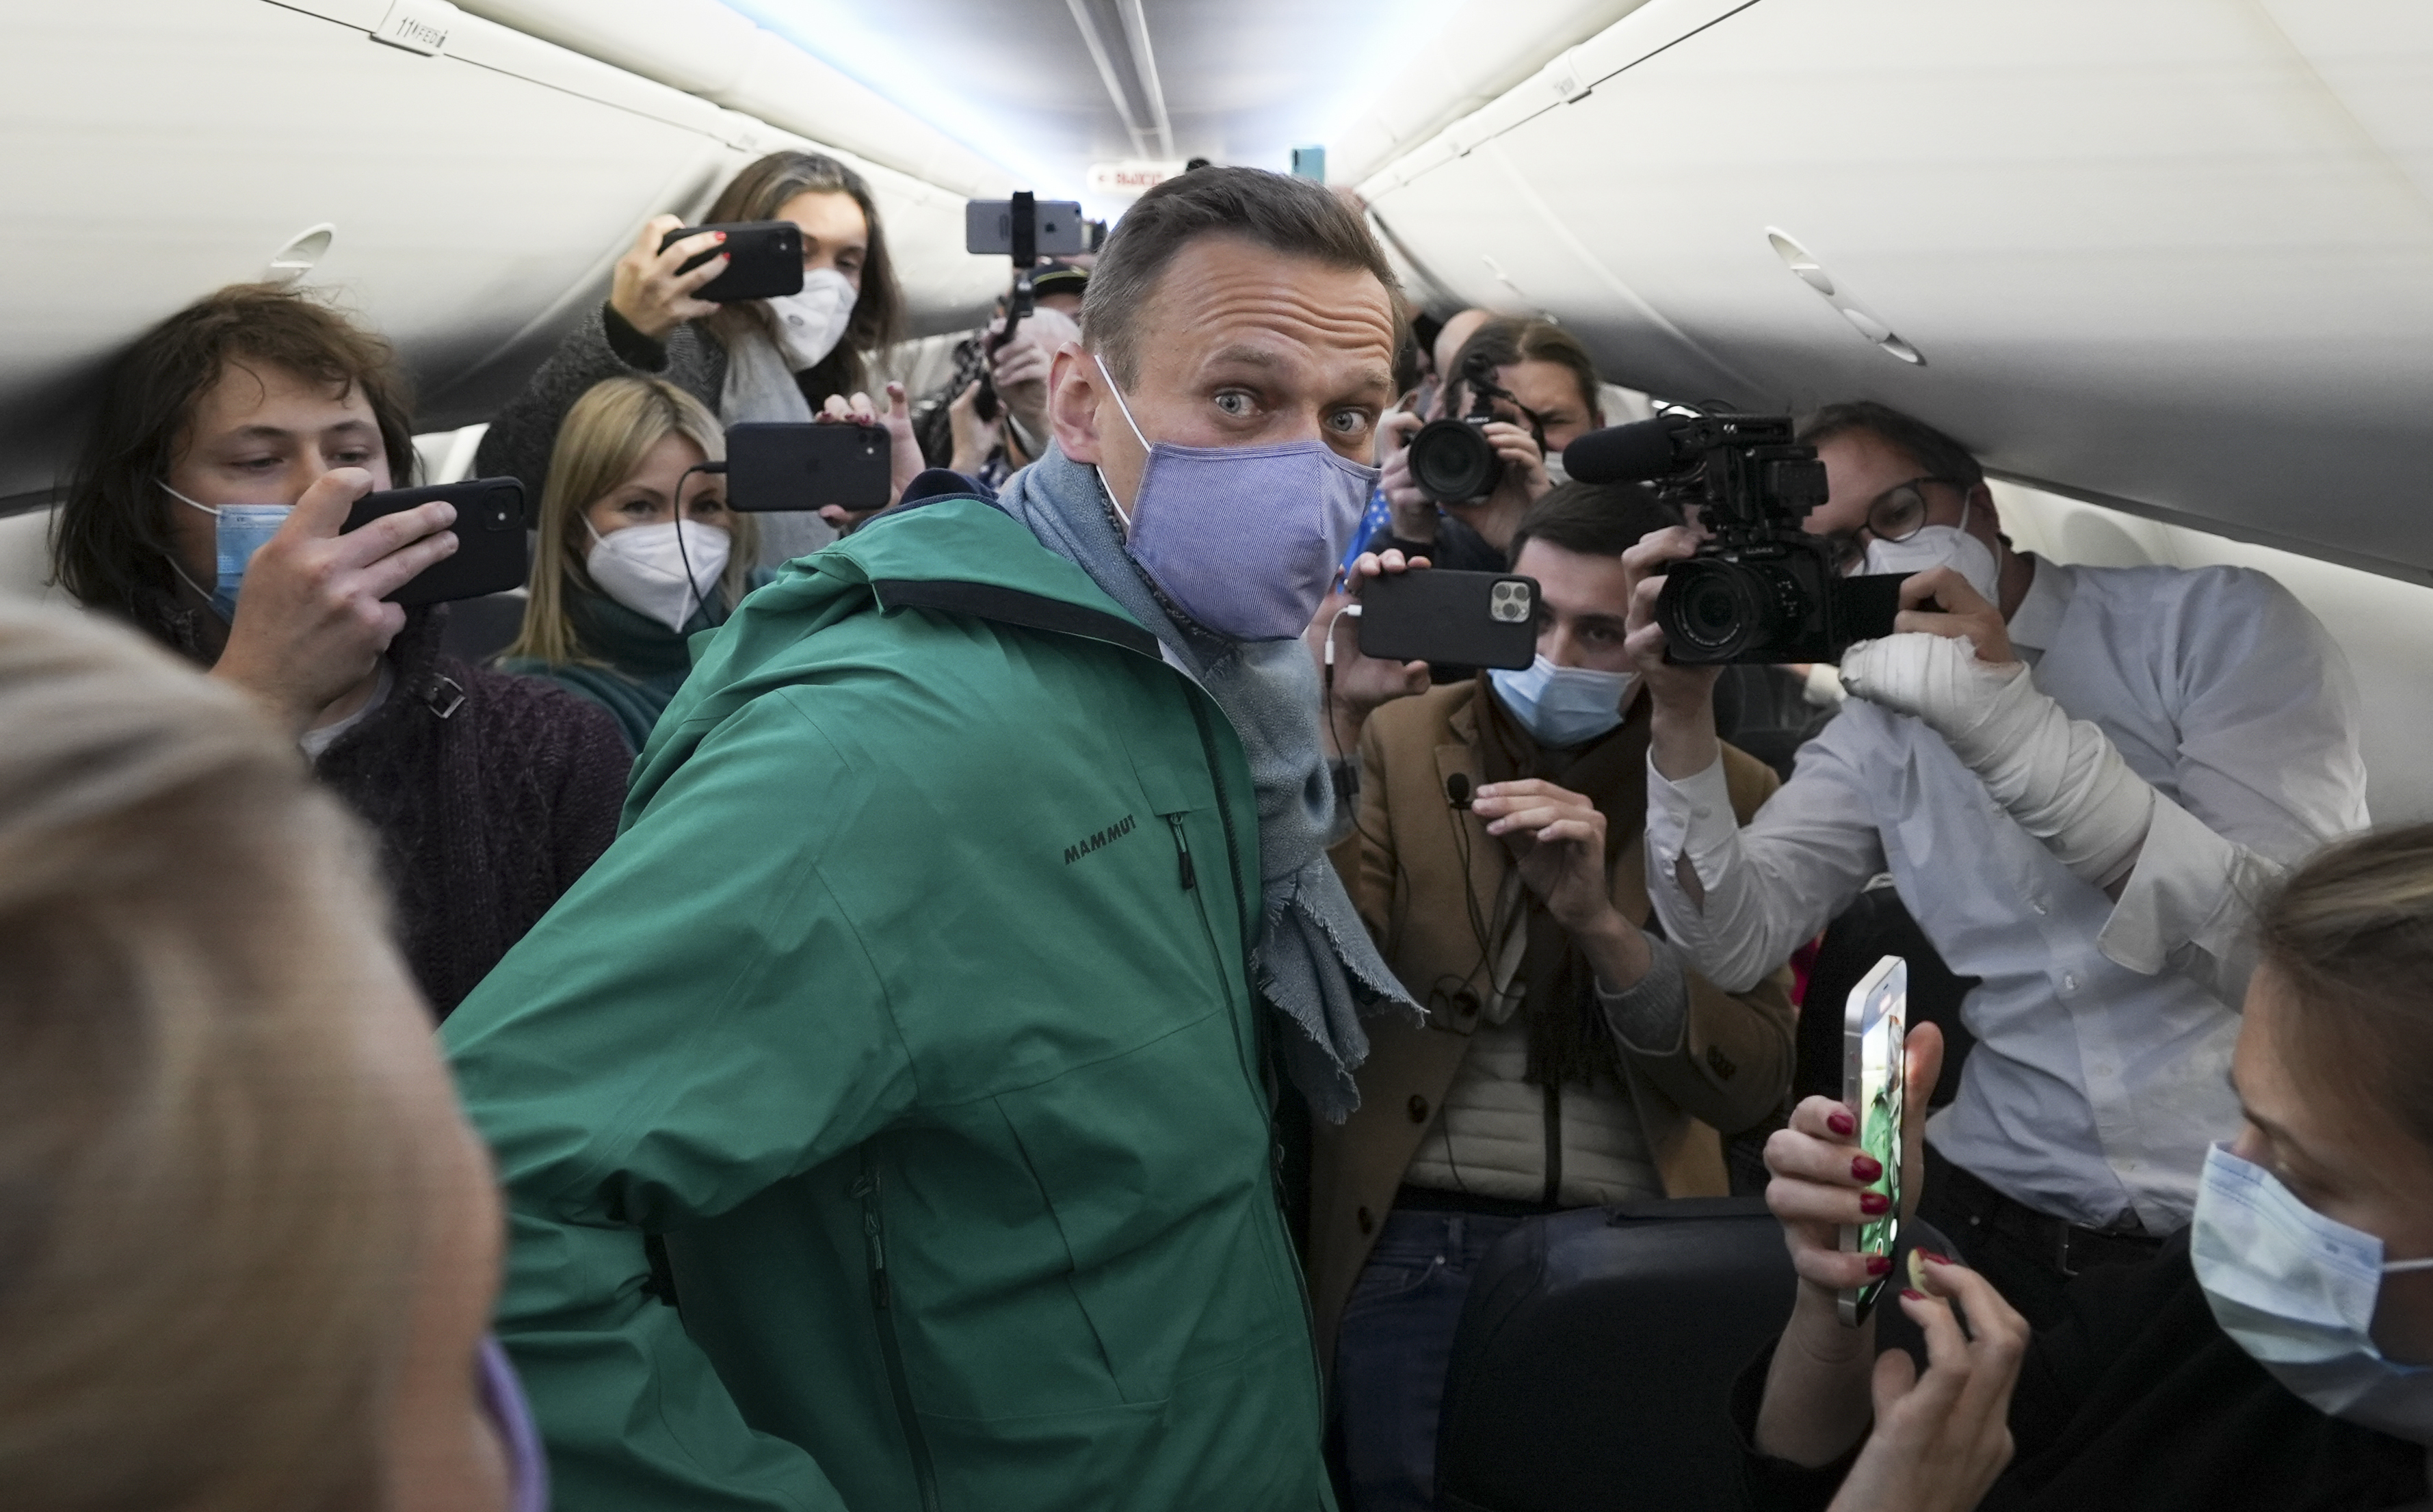 Alexei Navalny is surrounded by journalists inside the plane prior to his flight to Moscow in the Airport Berlin Brandenburg (BER) in Schoenefeld, near Berlin, Germany, on Jan. 17, 2021.